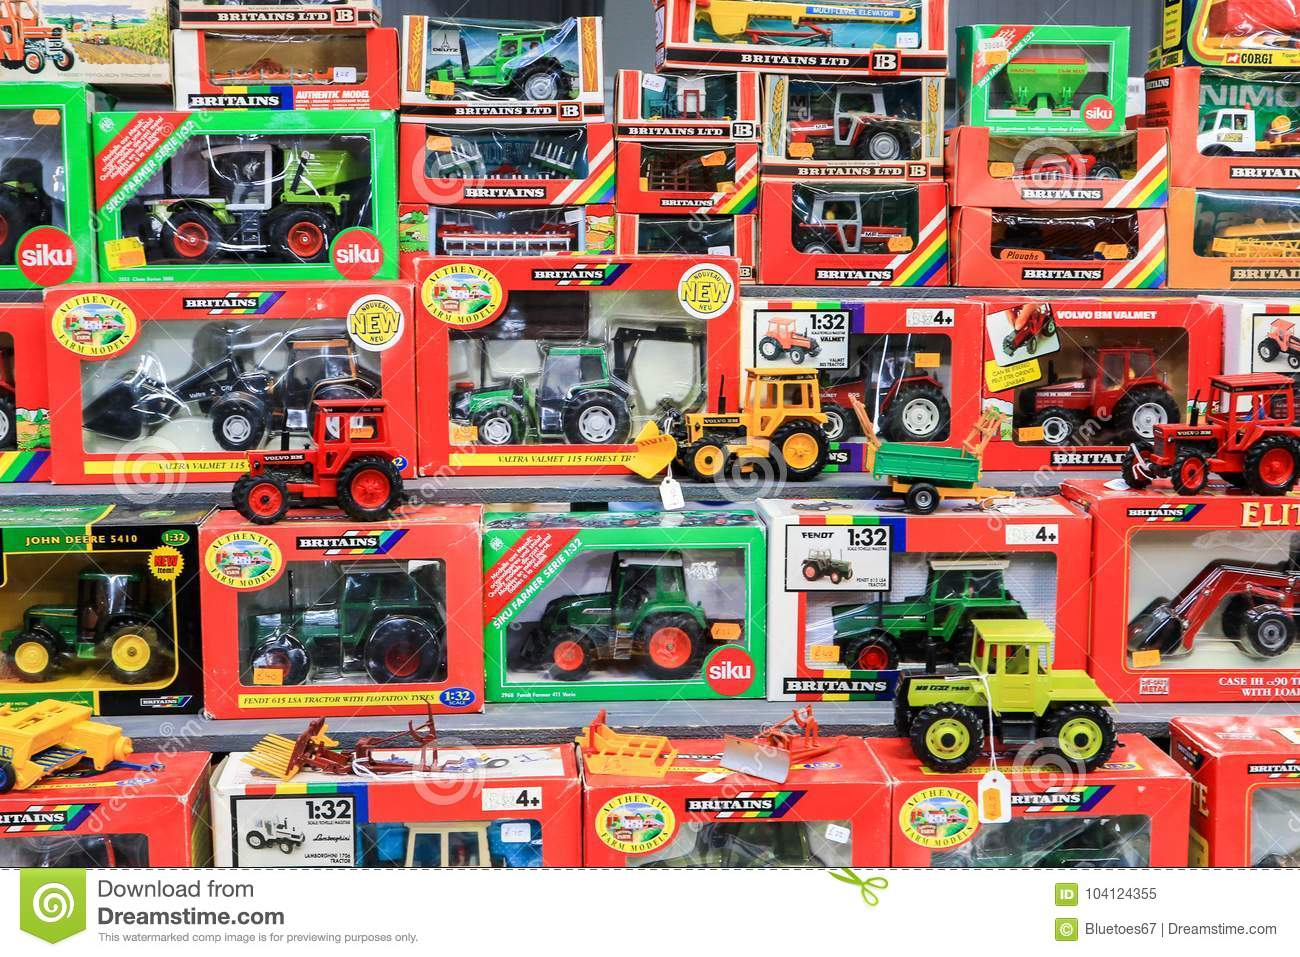 Toy Tractors For Sale >> Toy Tractors For Sale In Shop Editorial Image Image Of Harvest